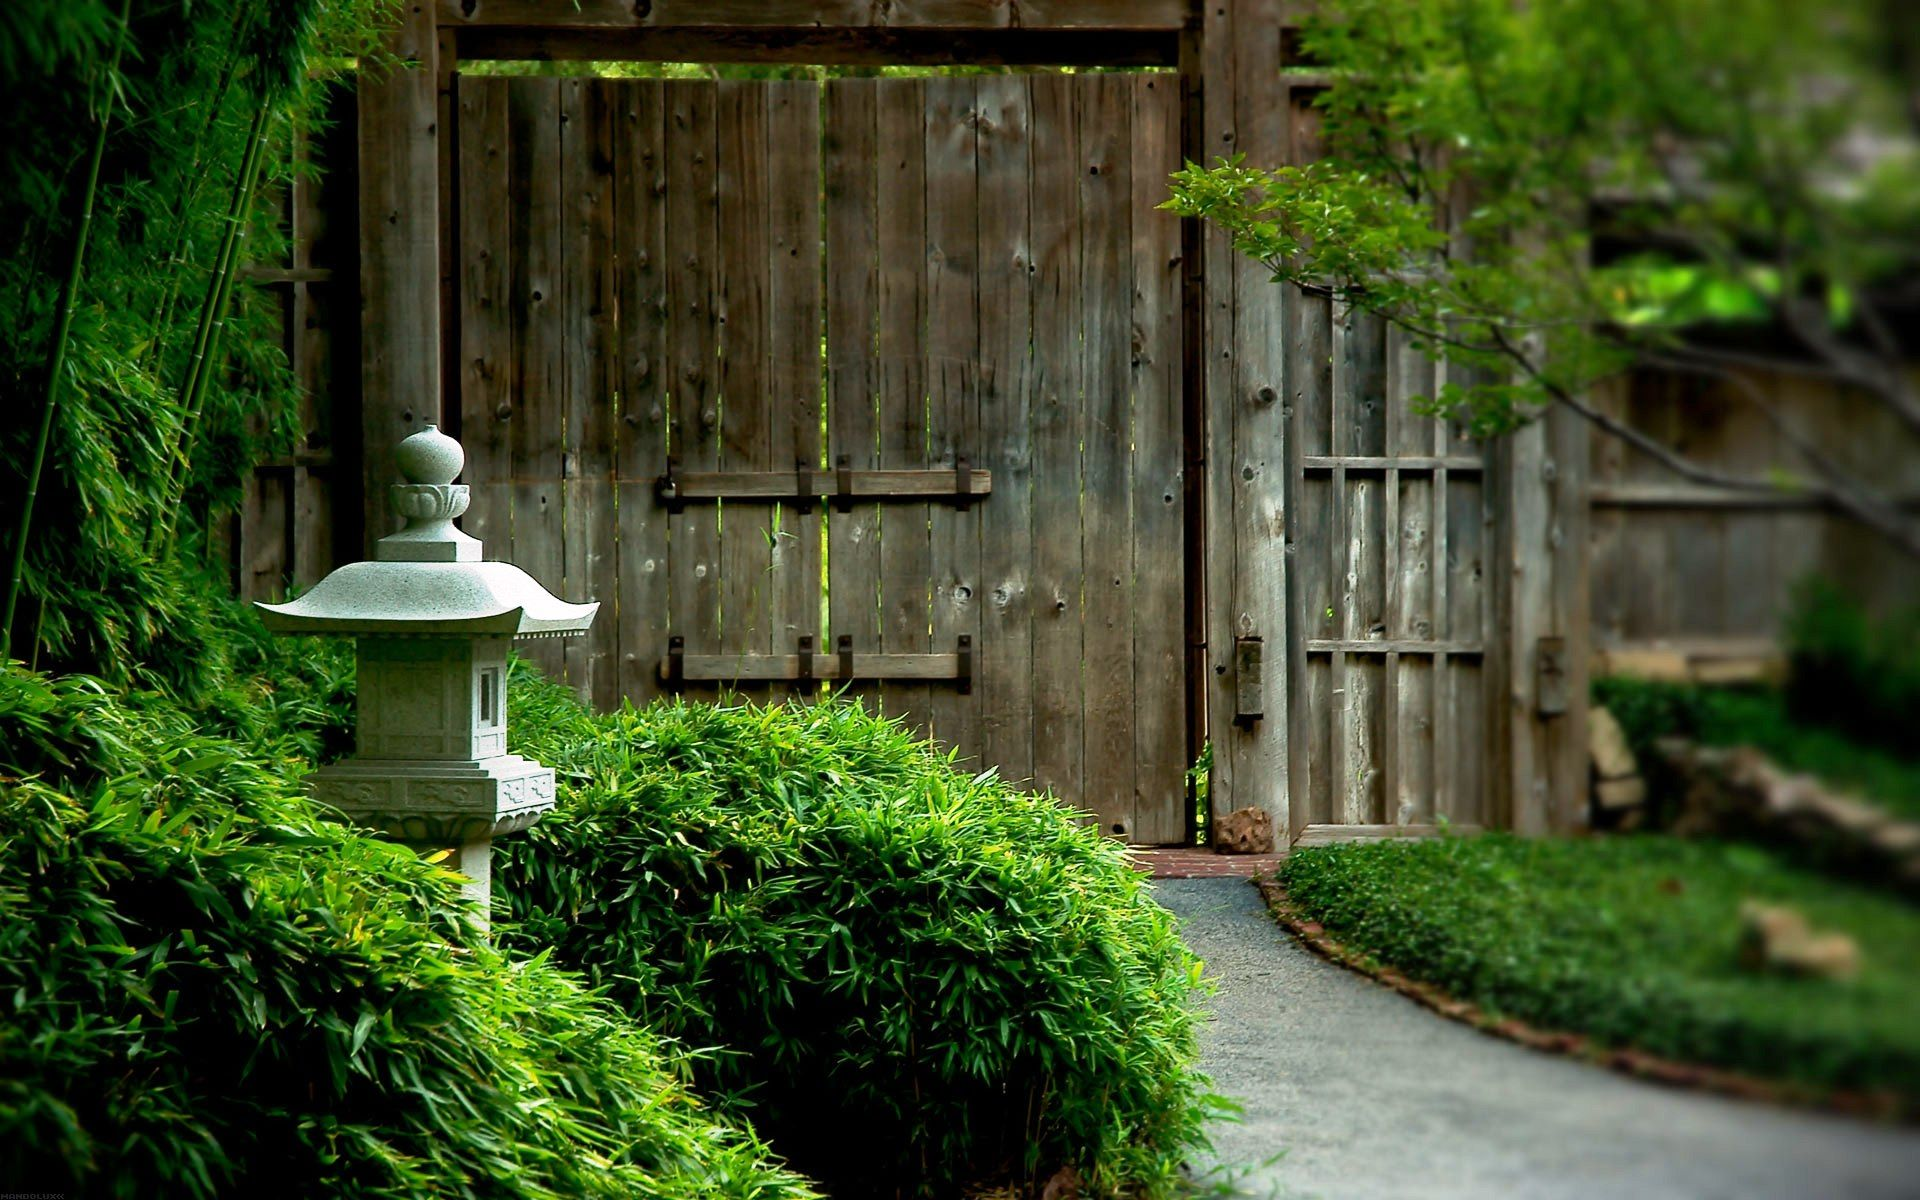 Beautiful Japanese Wooden Gate Widescreen Desktop Mobile Iphone Android Hd Wallpaper And